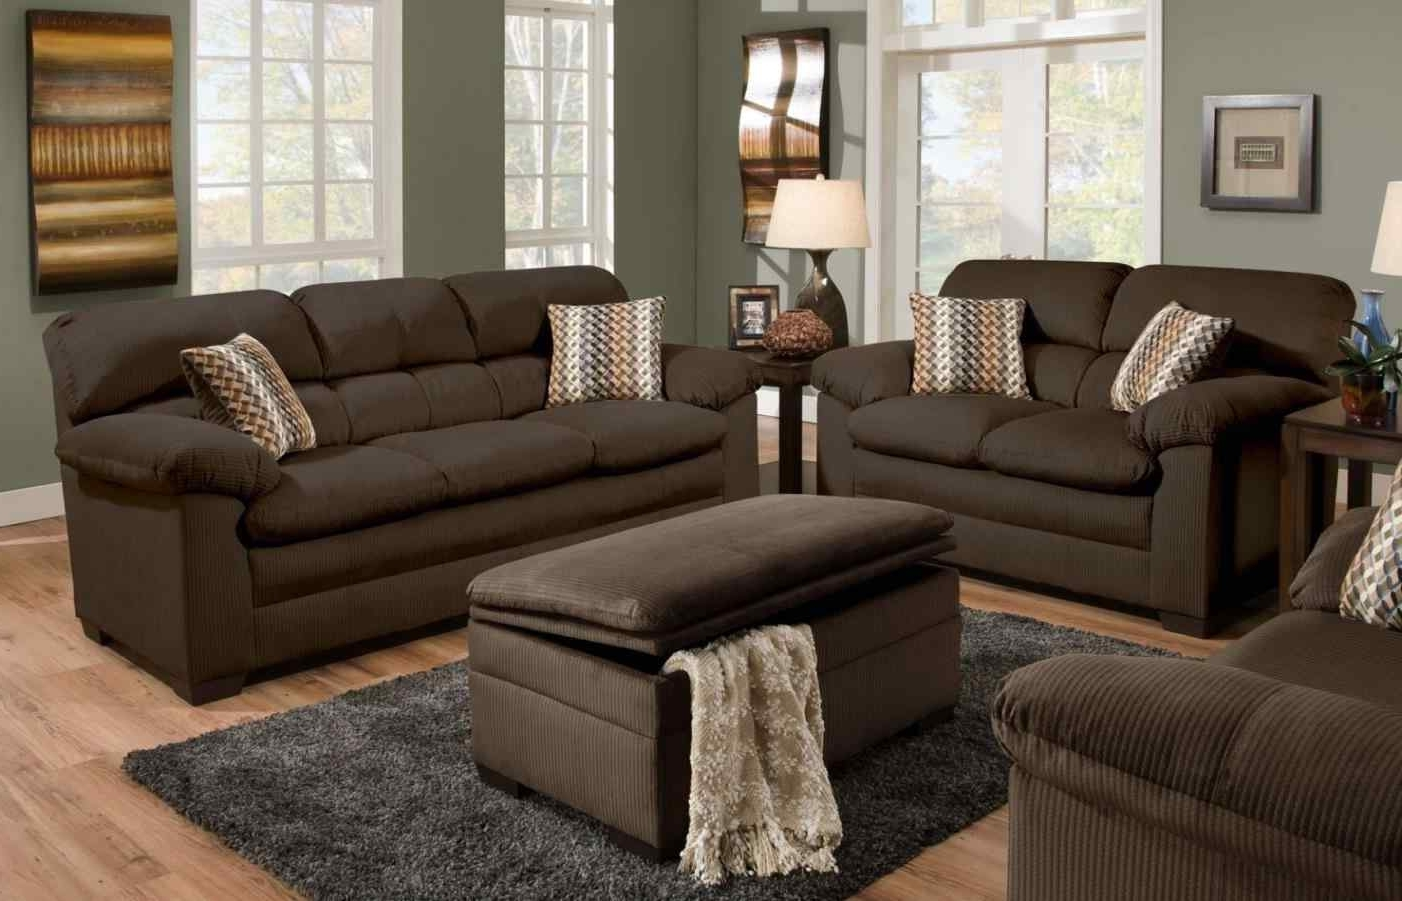 Oversized Sofa Chairs Pertaining To Favorite The Images Collection Of Sectional Leather Living Room Furniture (View 14 of 15)